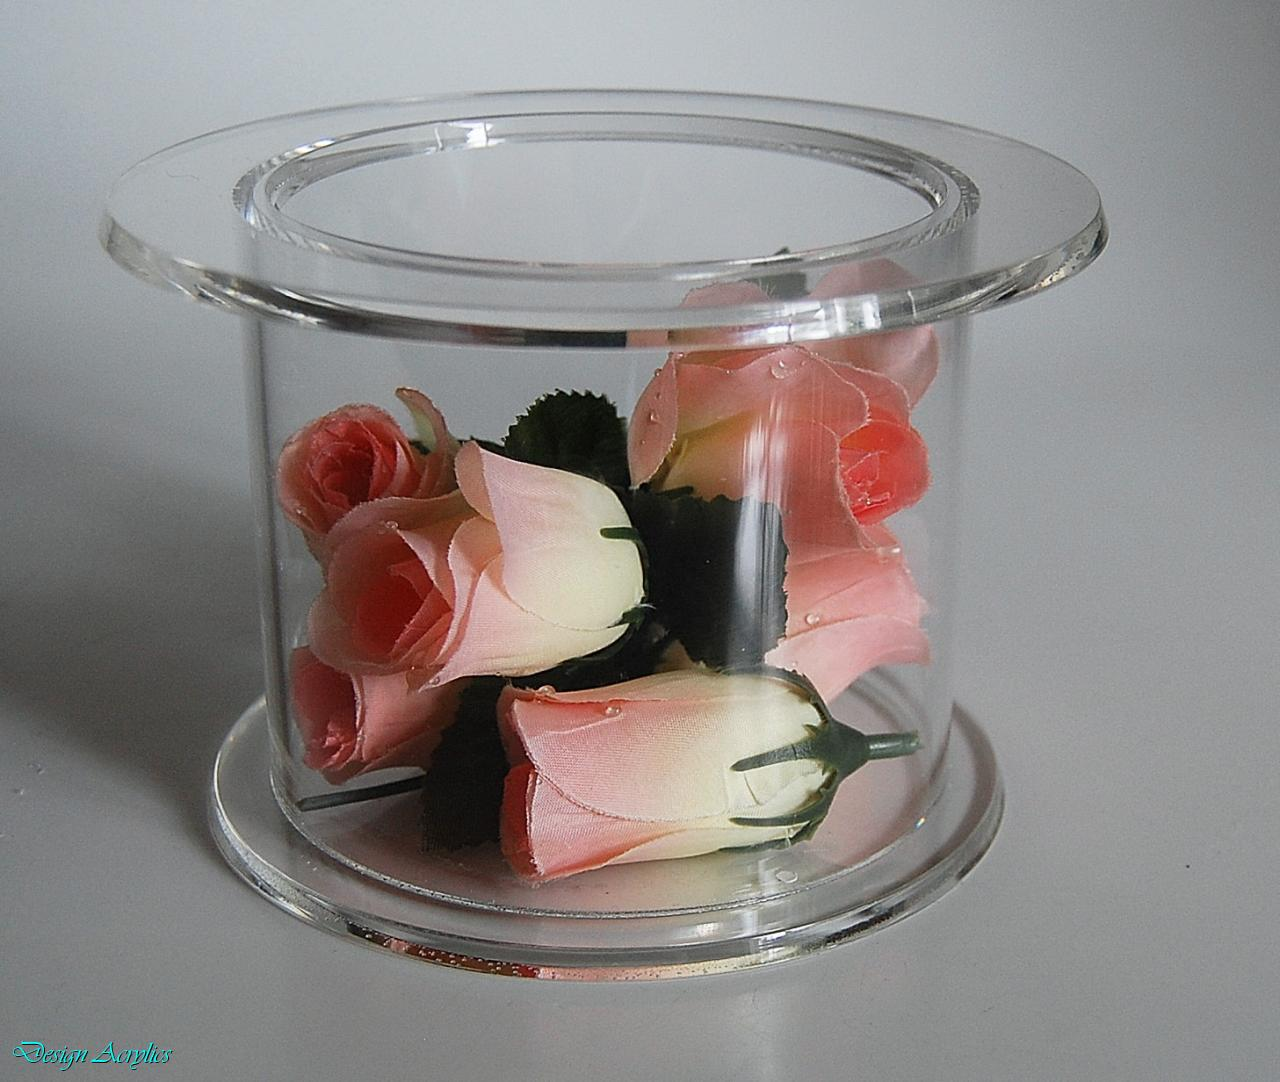 Details About ROUND ACRYLIC CAKE STAND PARTY WEDDING DISPLAY